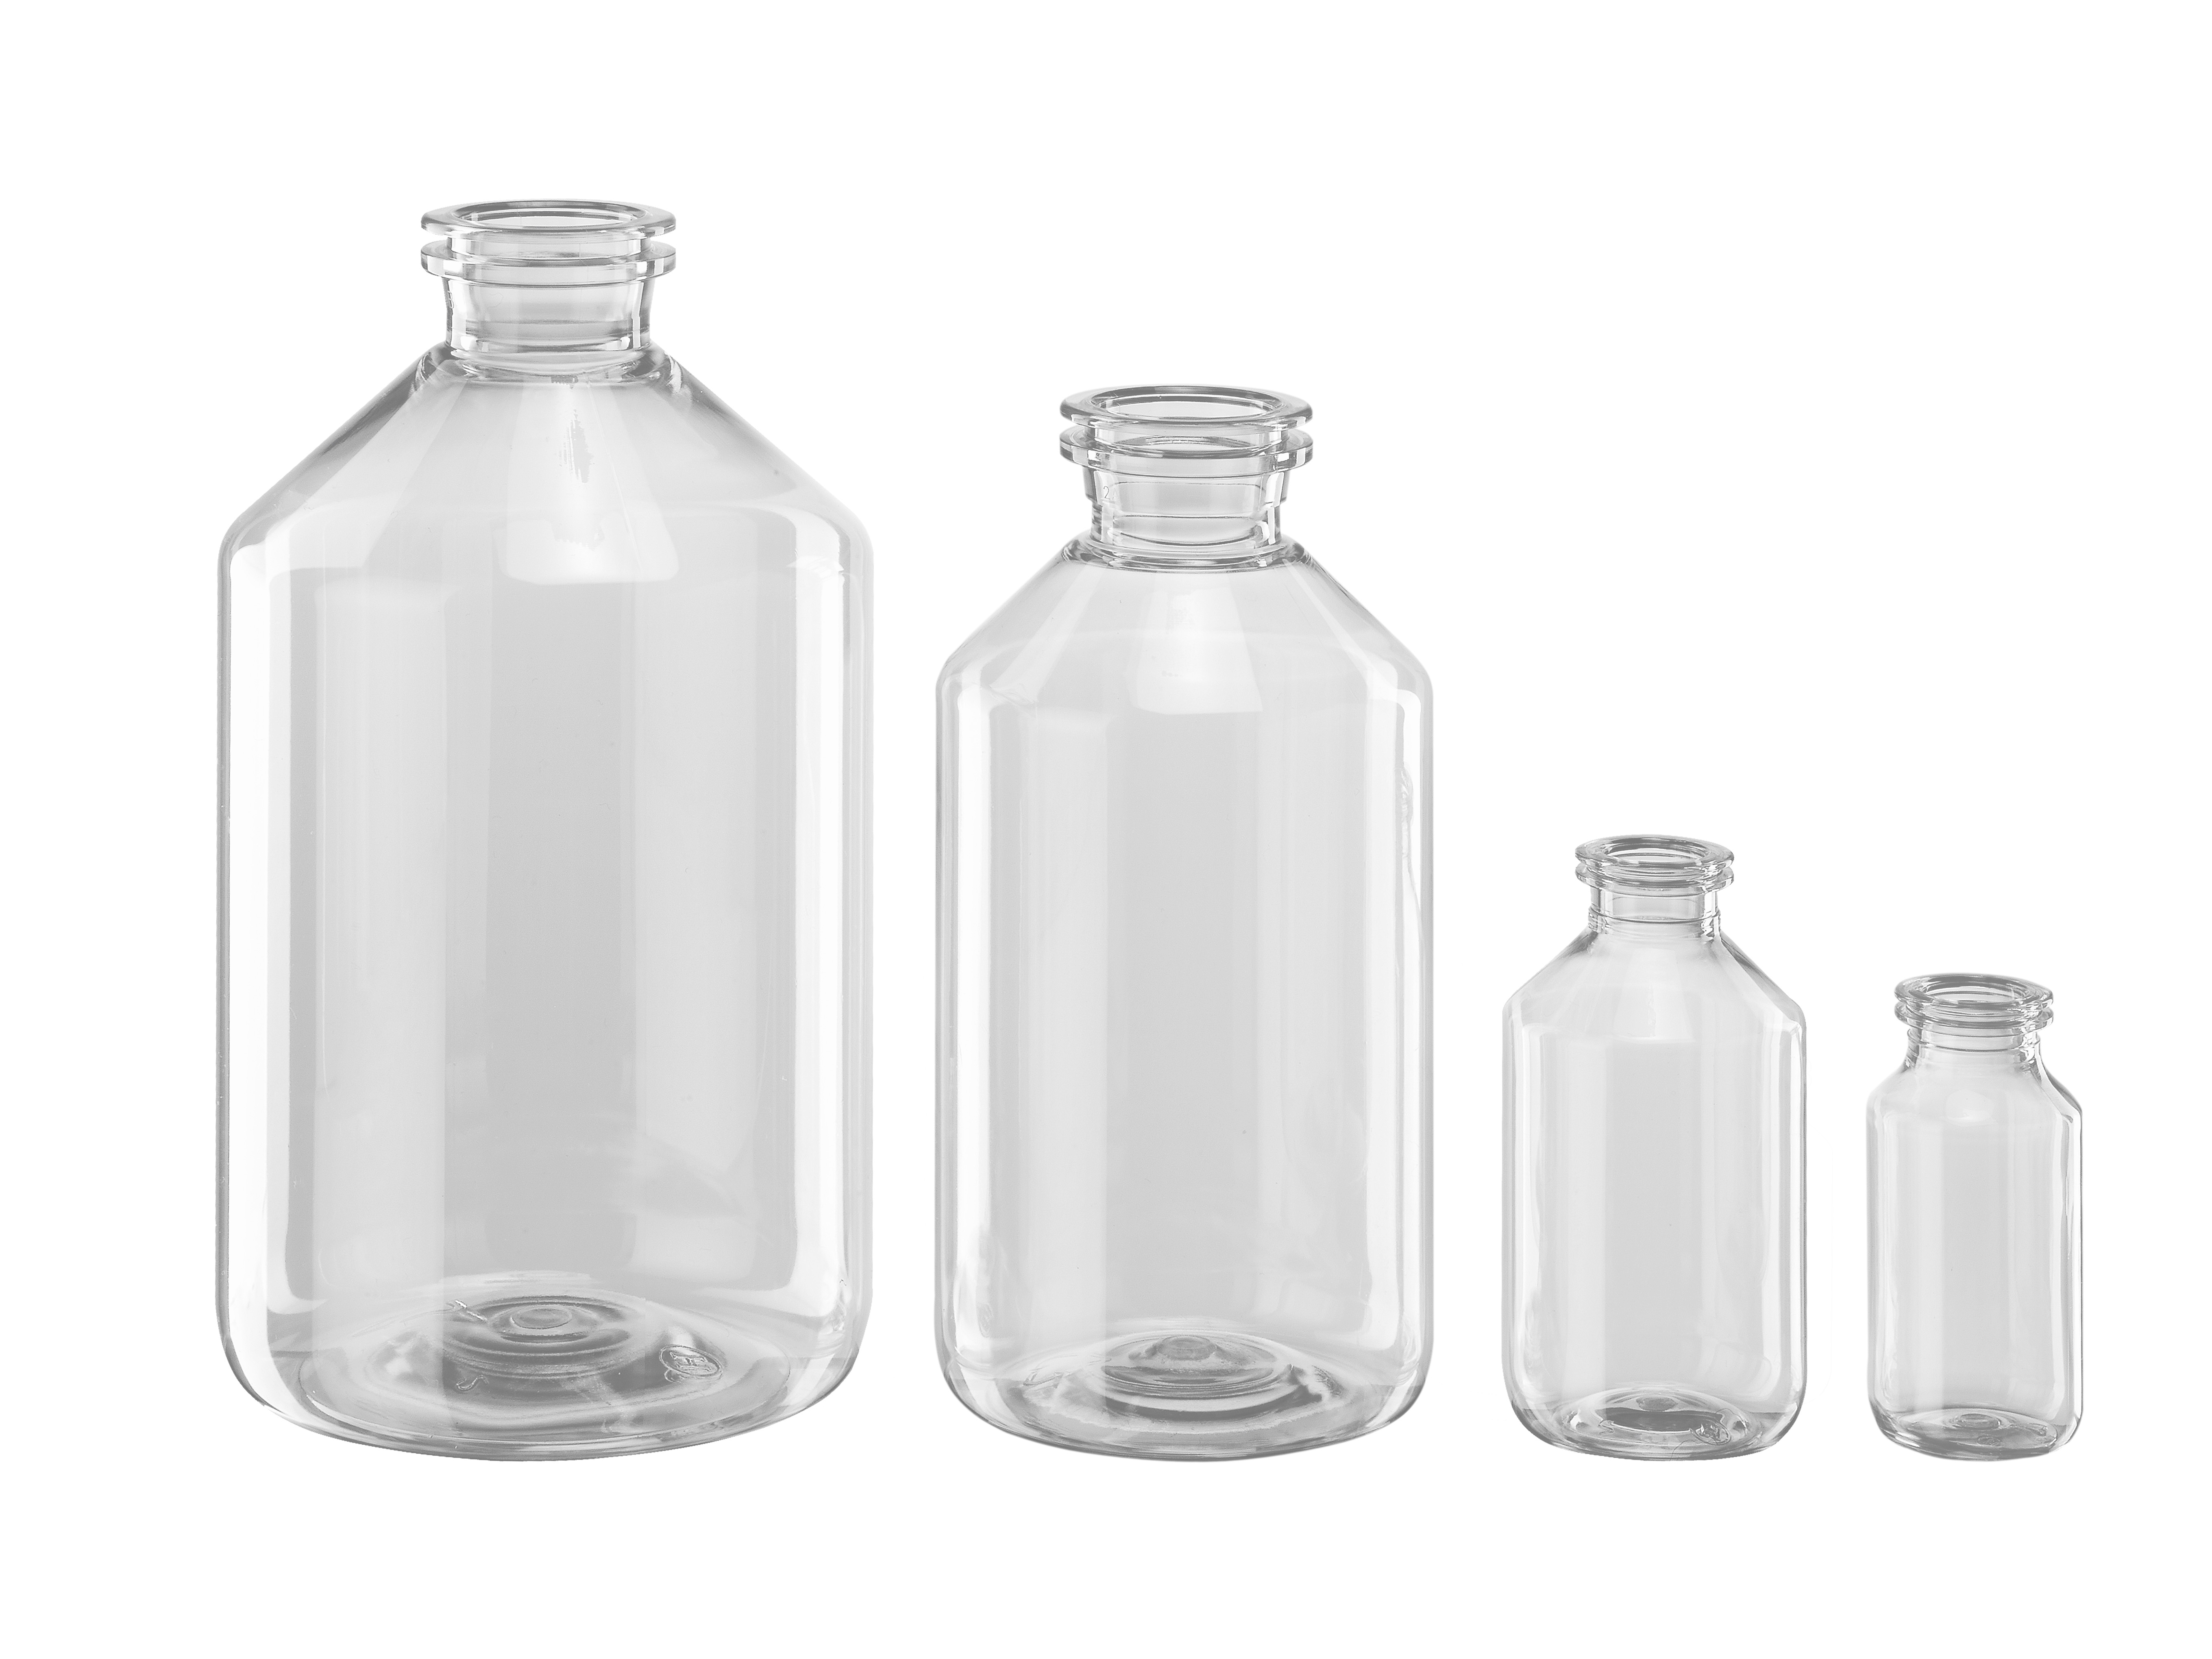 PET injection bottles with crimp neck finish